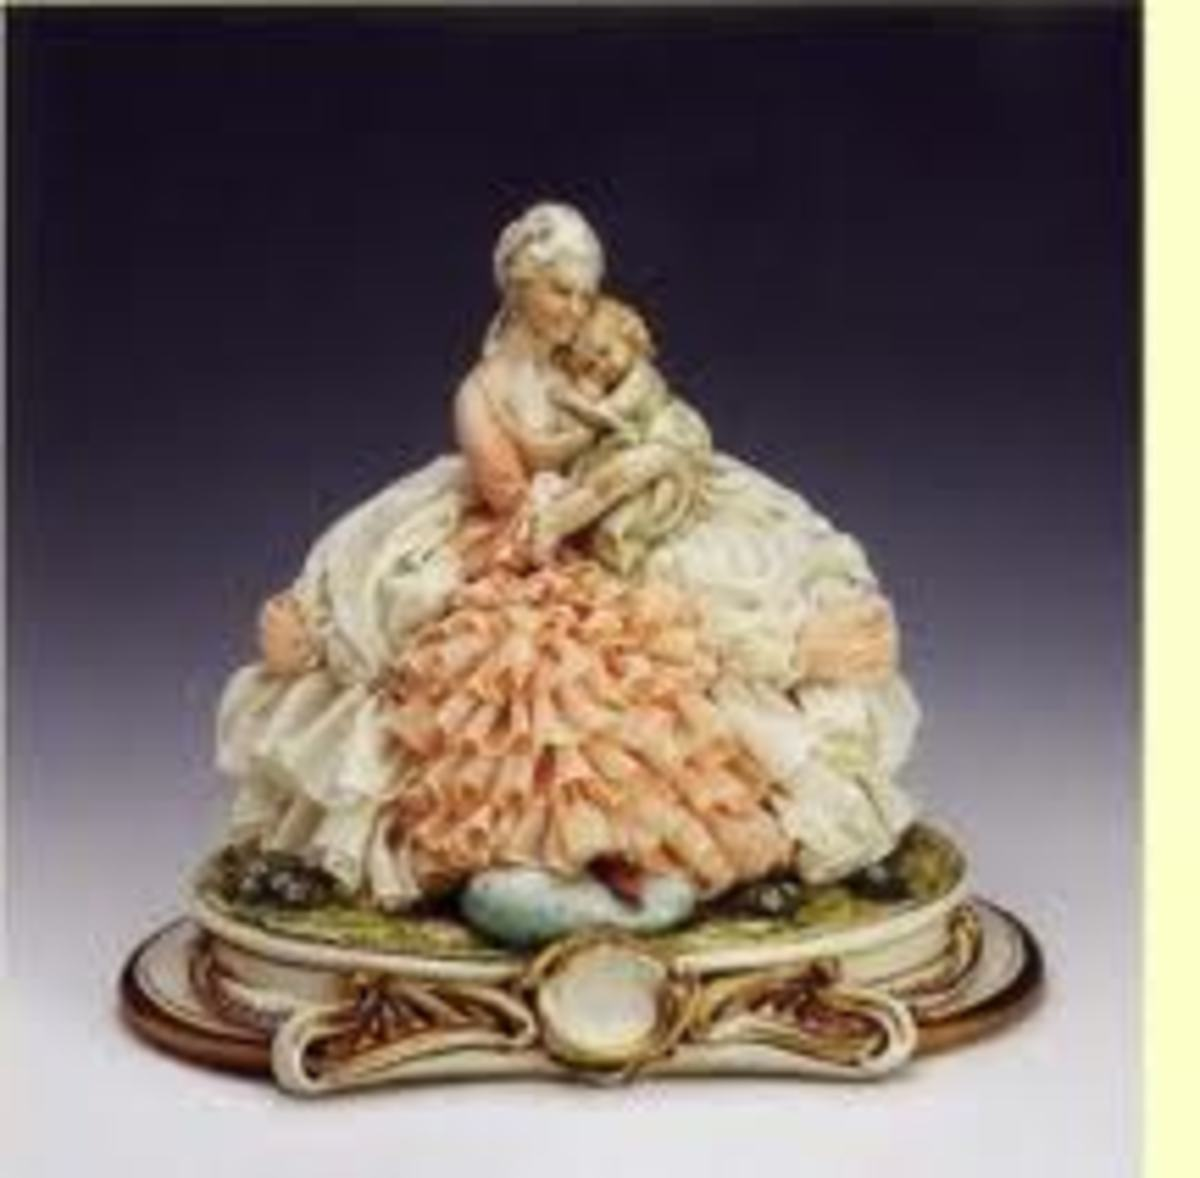 Capodimonte Porcelain Figurines for Sale - Cheapest Prices